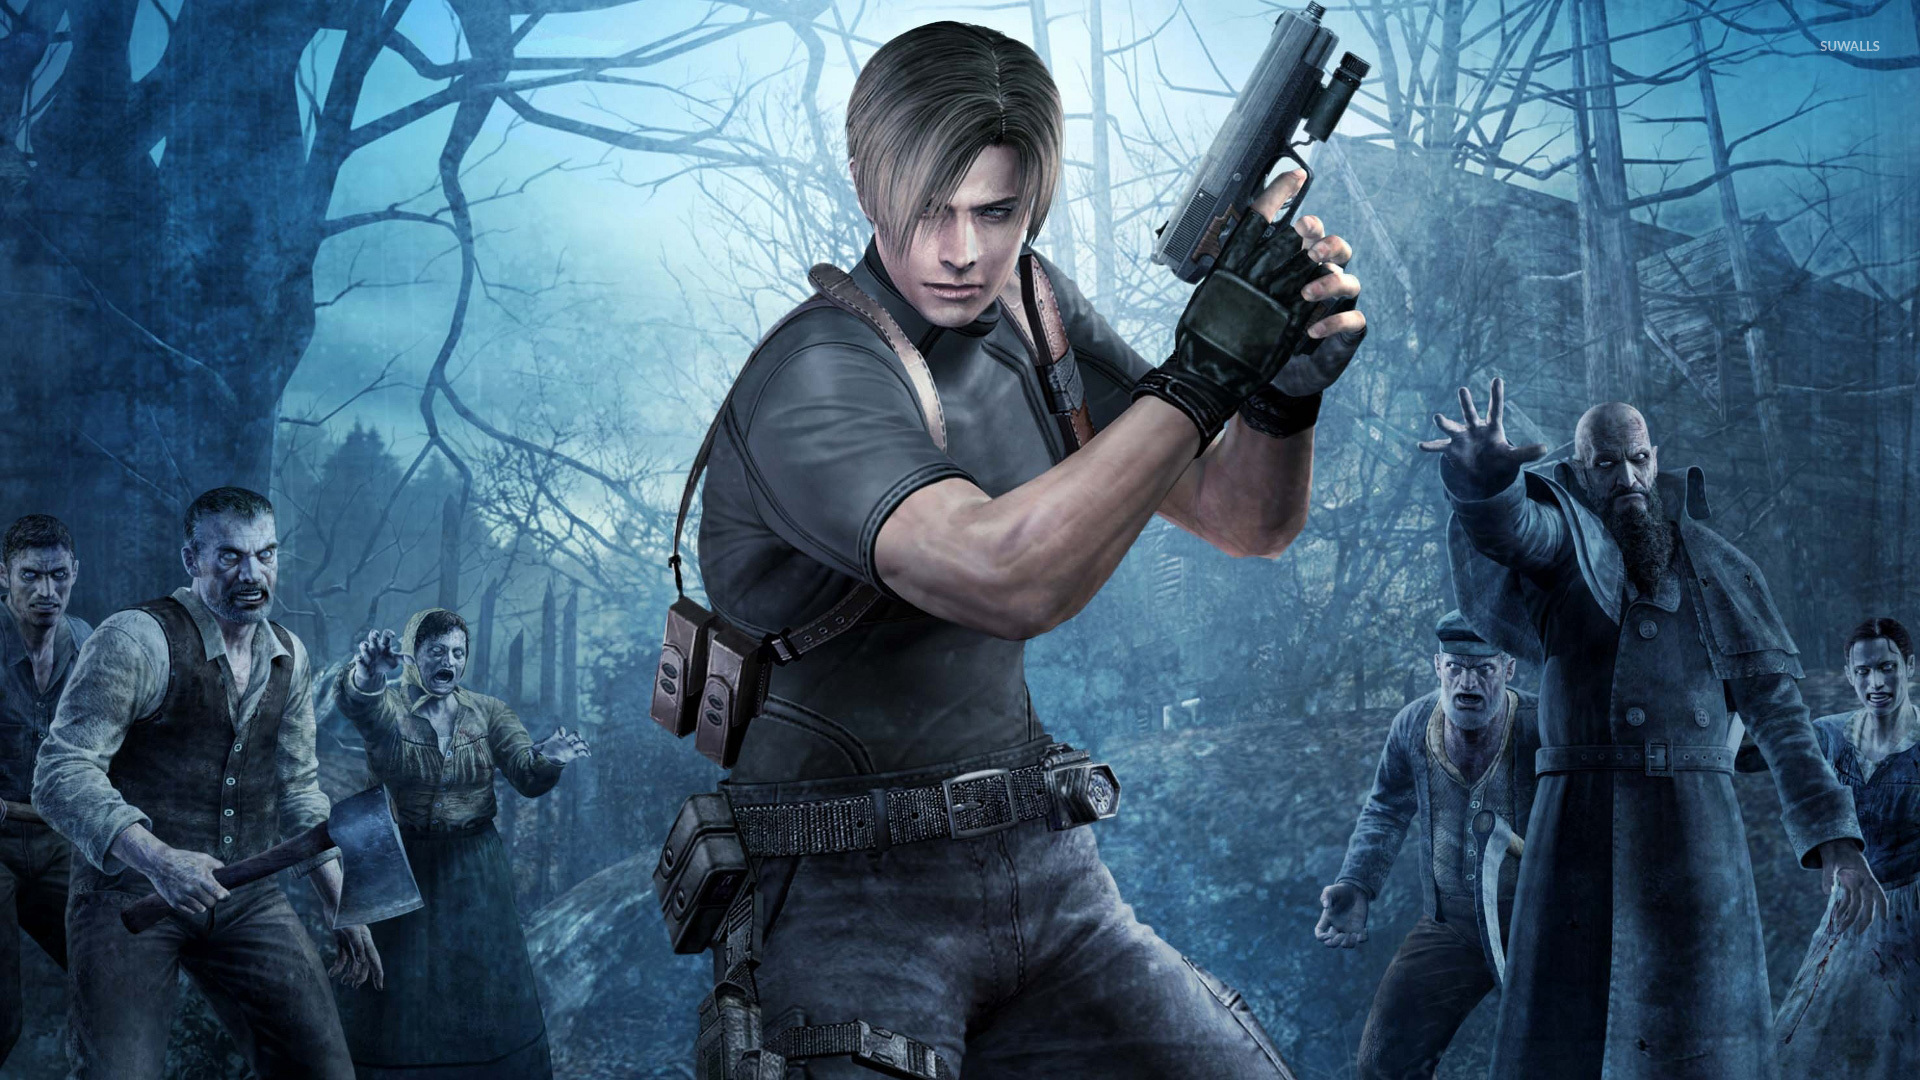 Leon Kennedy Resident Evil 4 Wallpaper Game Wallpapers 20874